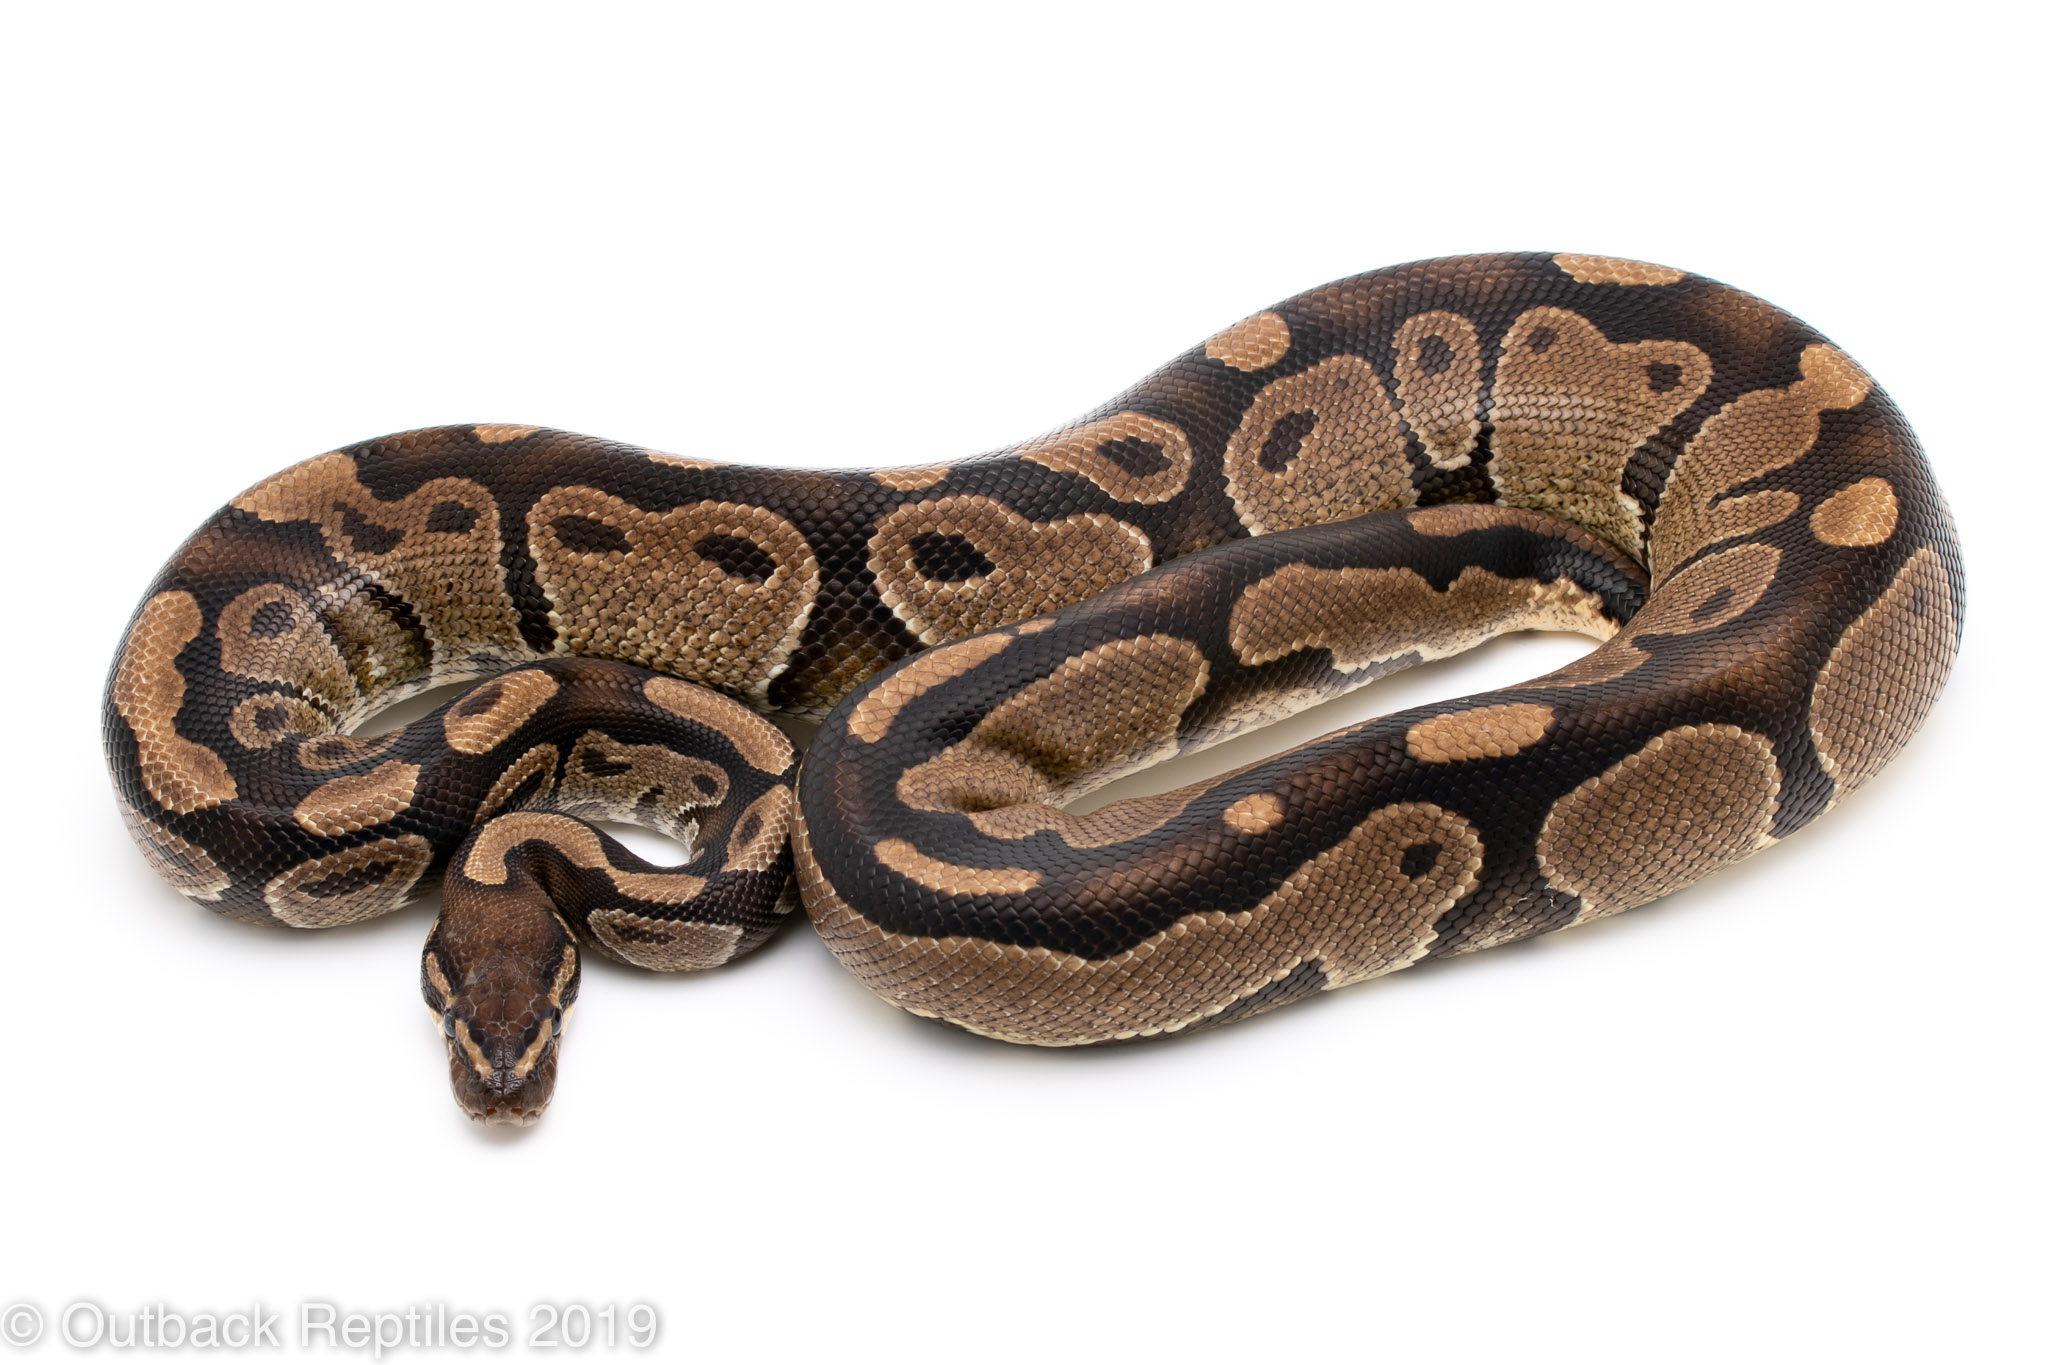 DH VPI Pied male 1 | Outback Reptiles